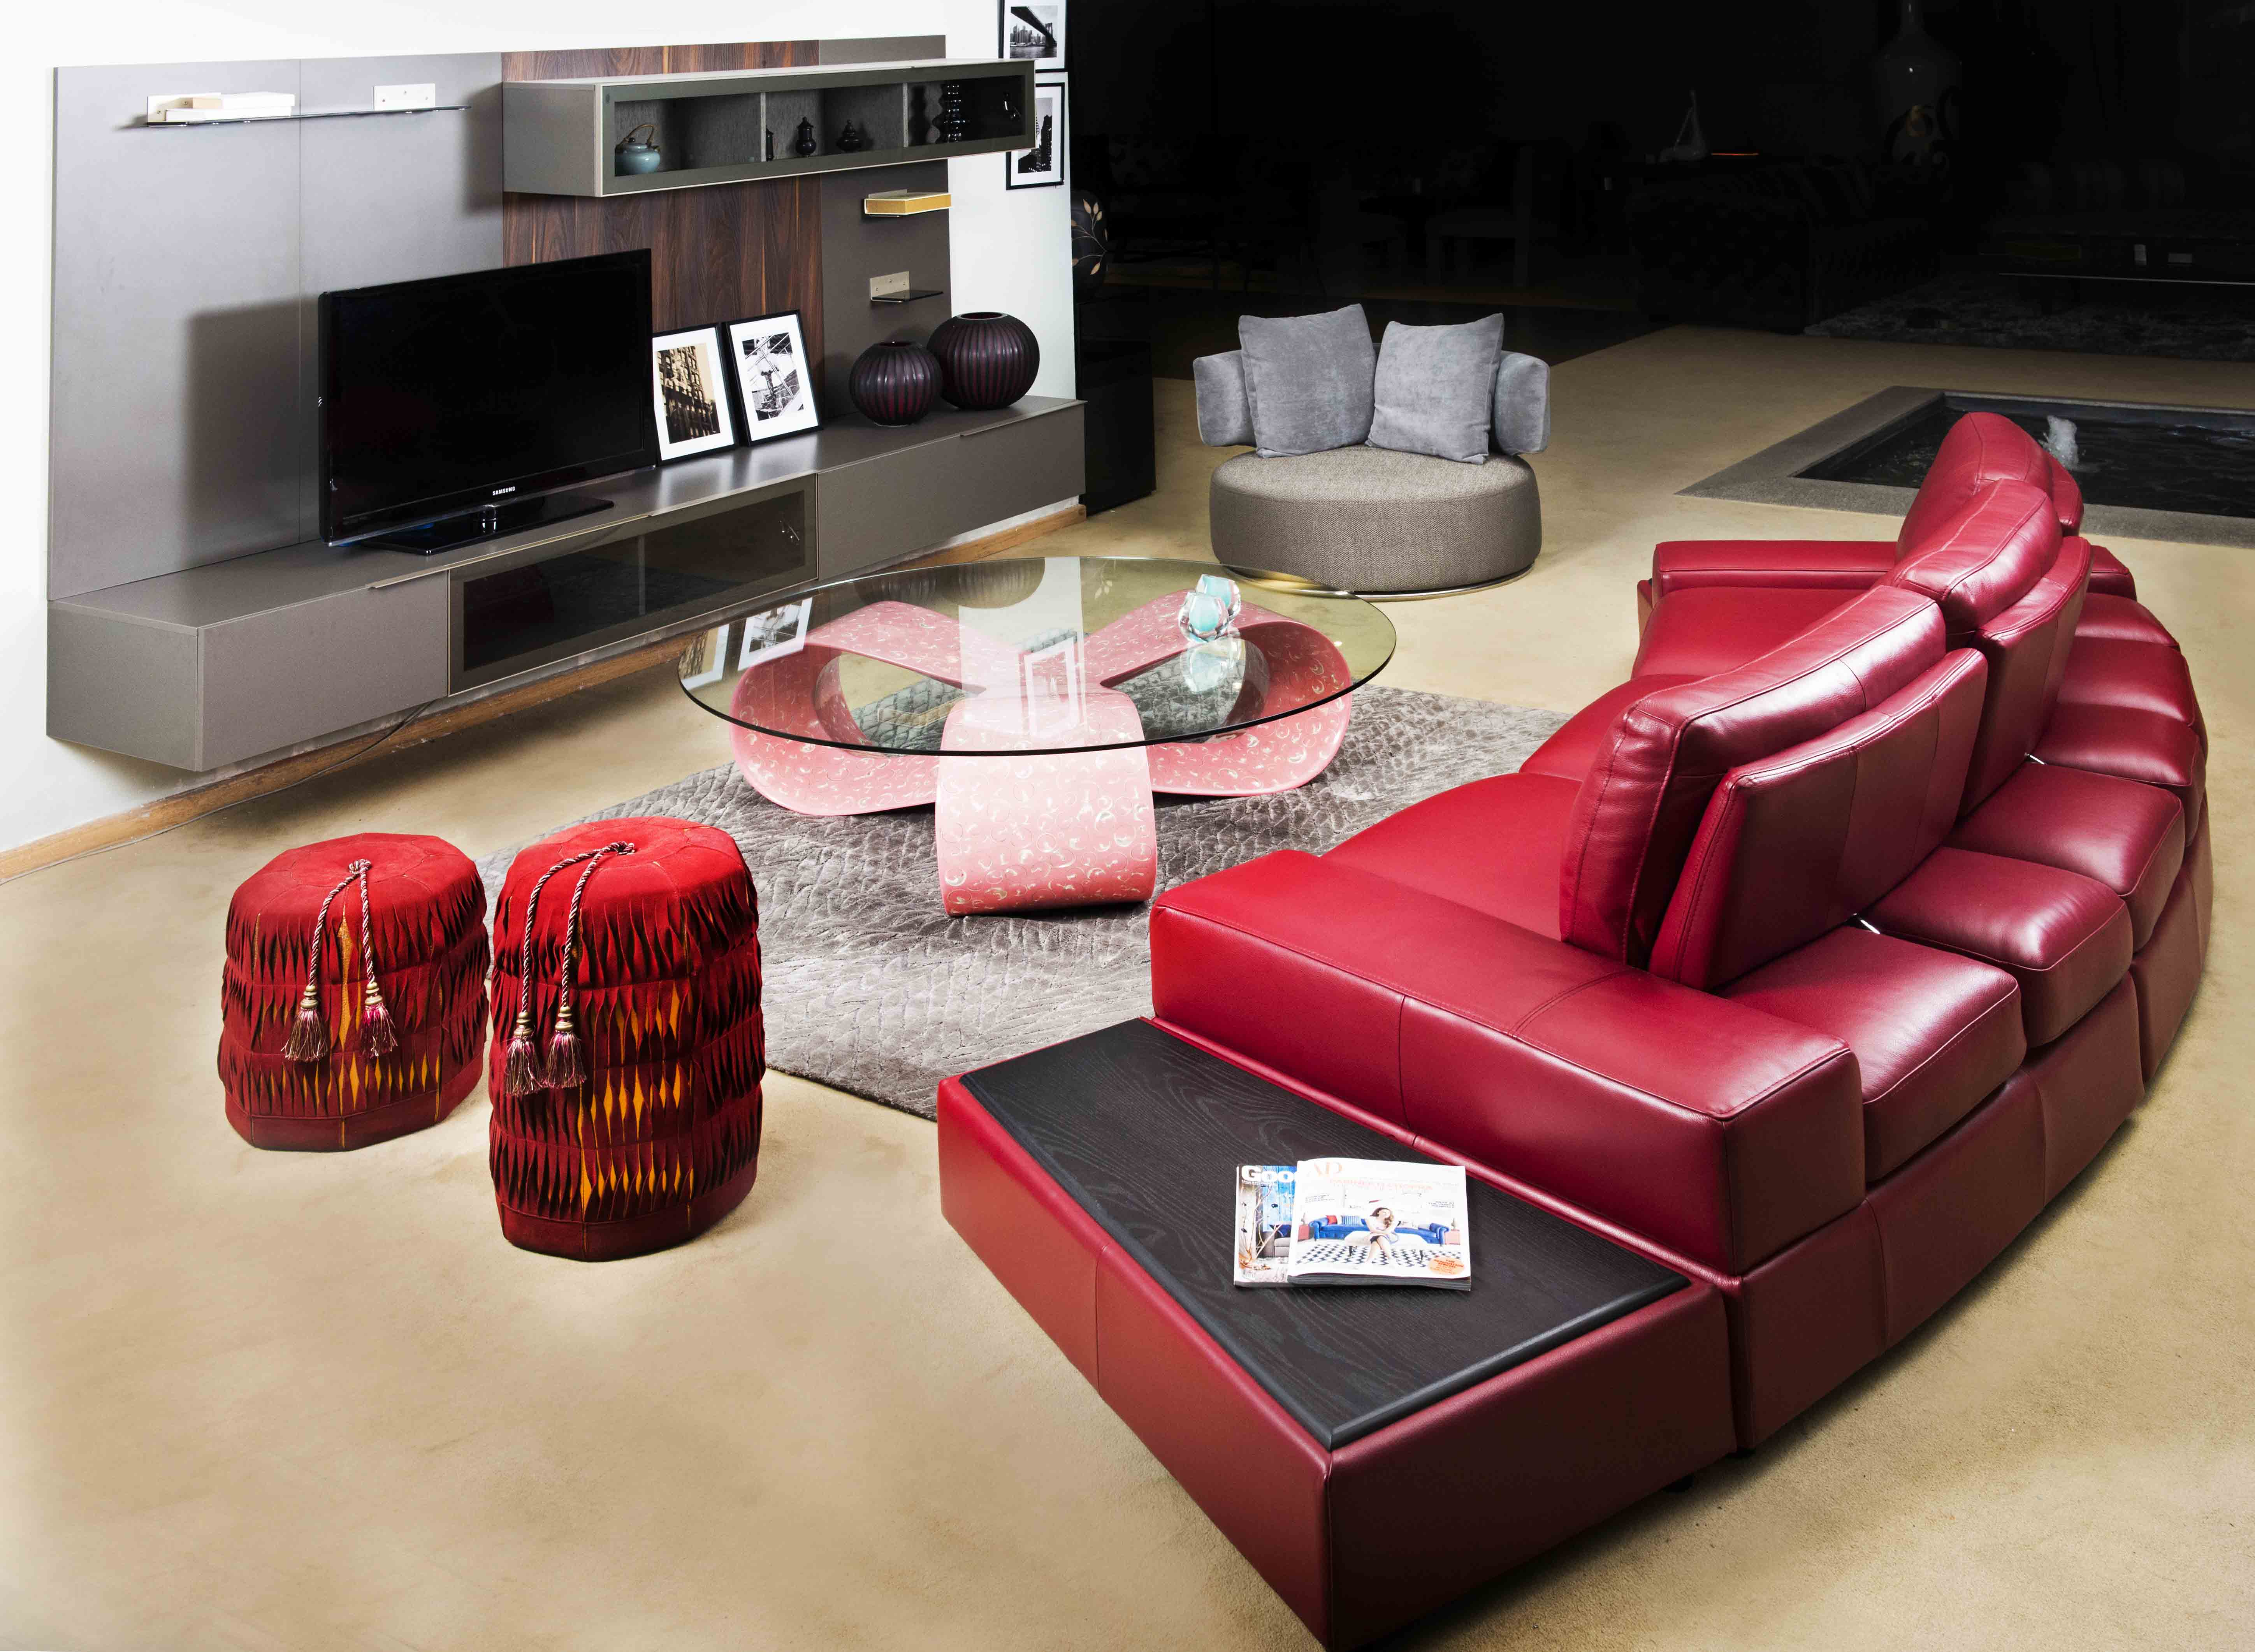 Salon Modular Leather Sectional Sofa For Valentine's Day From IDUS